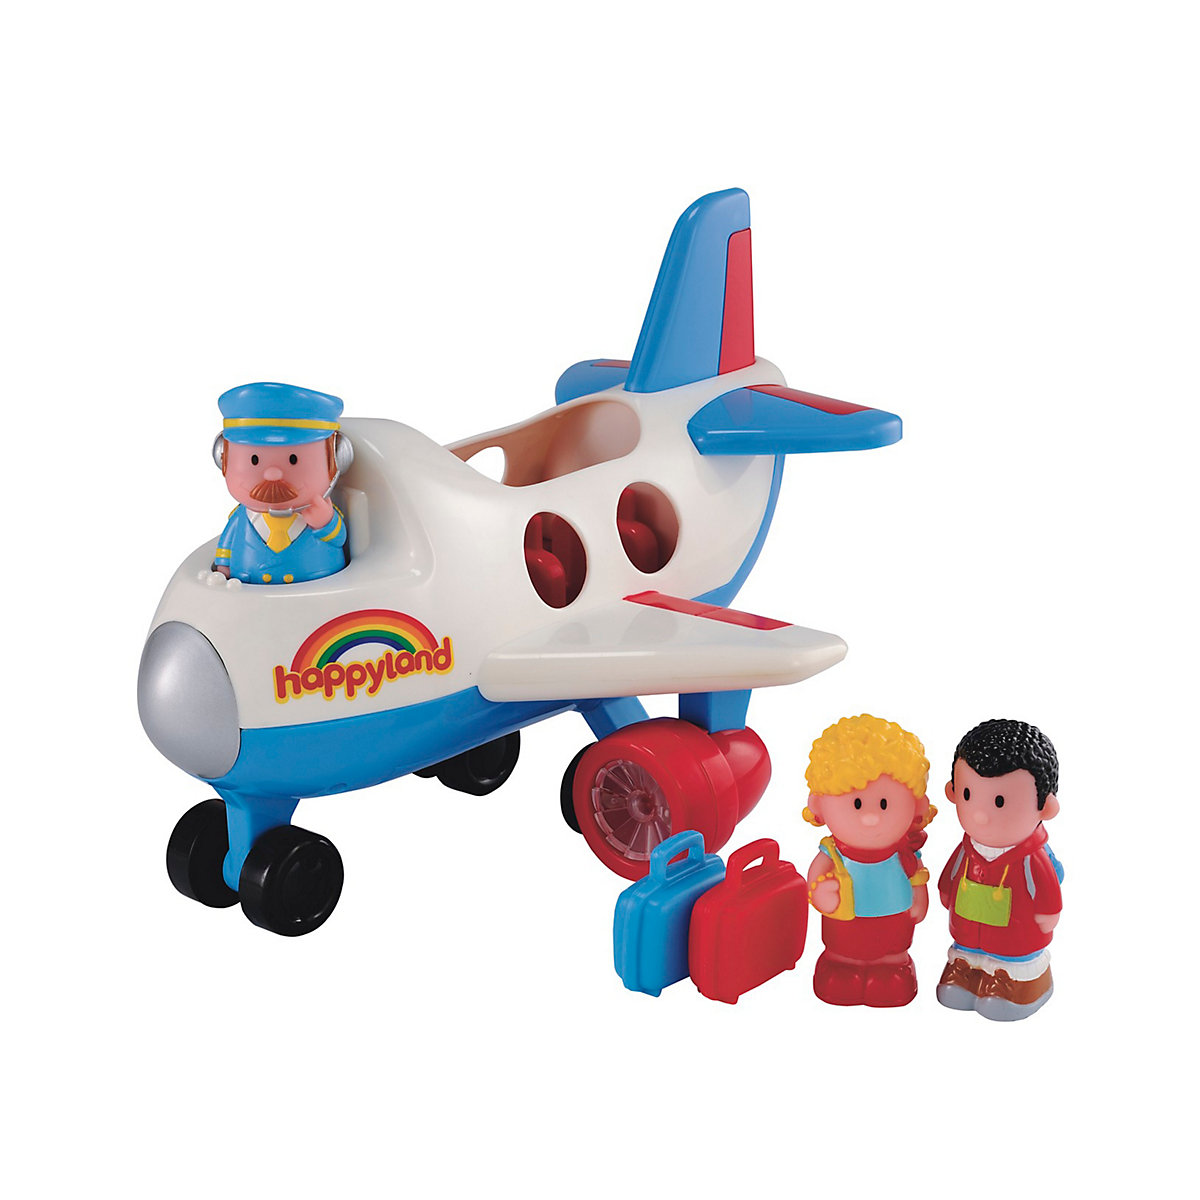 New ELC Boys and Girls Happyland Fly and Go Jumbo Toy From 2 years